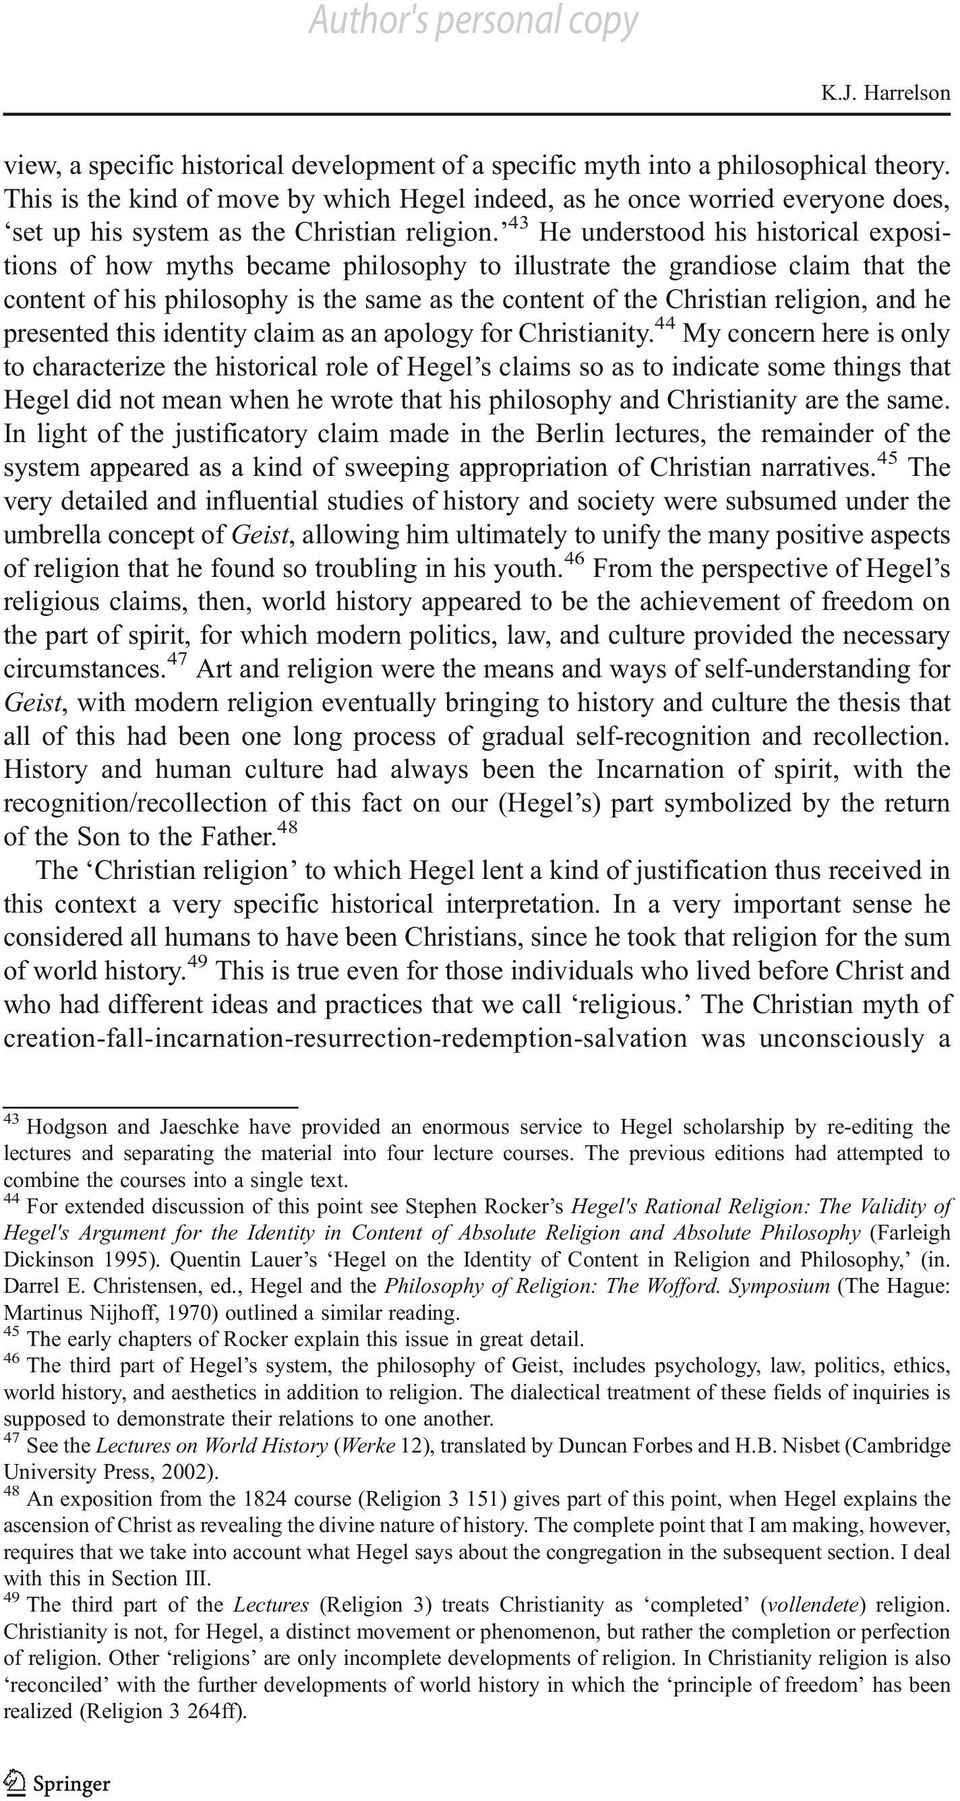 an analysis of the historical and theological perspective of chronology The biblical theology movement was a reaction against the study of the bible in previous liberal theology where the source criticism of the historical - critical method atomized the biblical text into separate sources, frequently consisting of small isolated entities or fragments of documents.